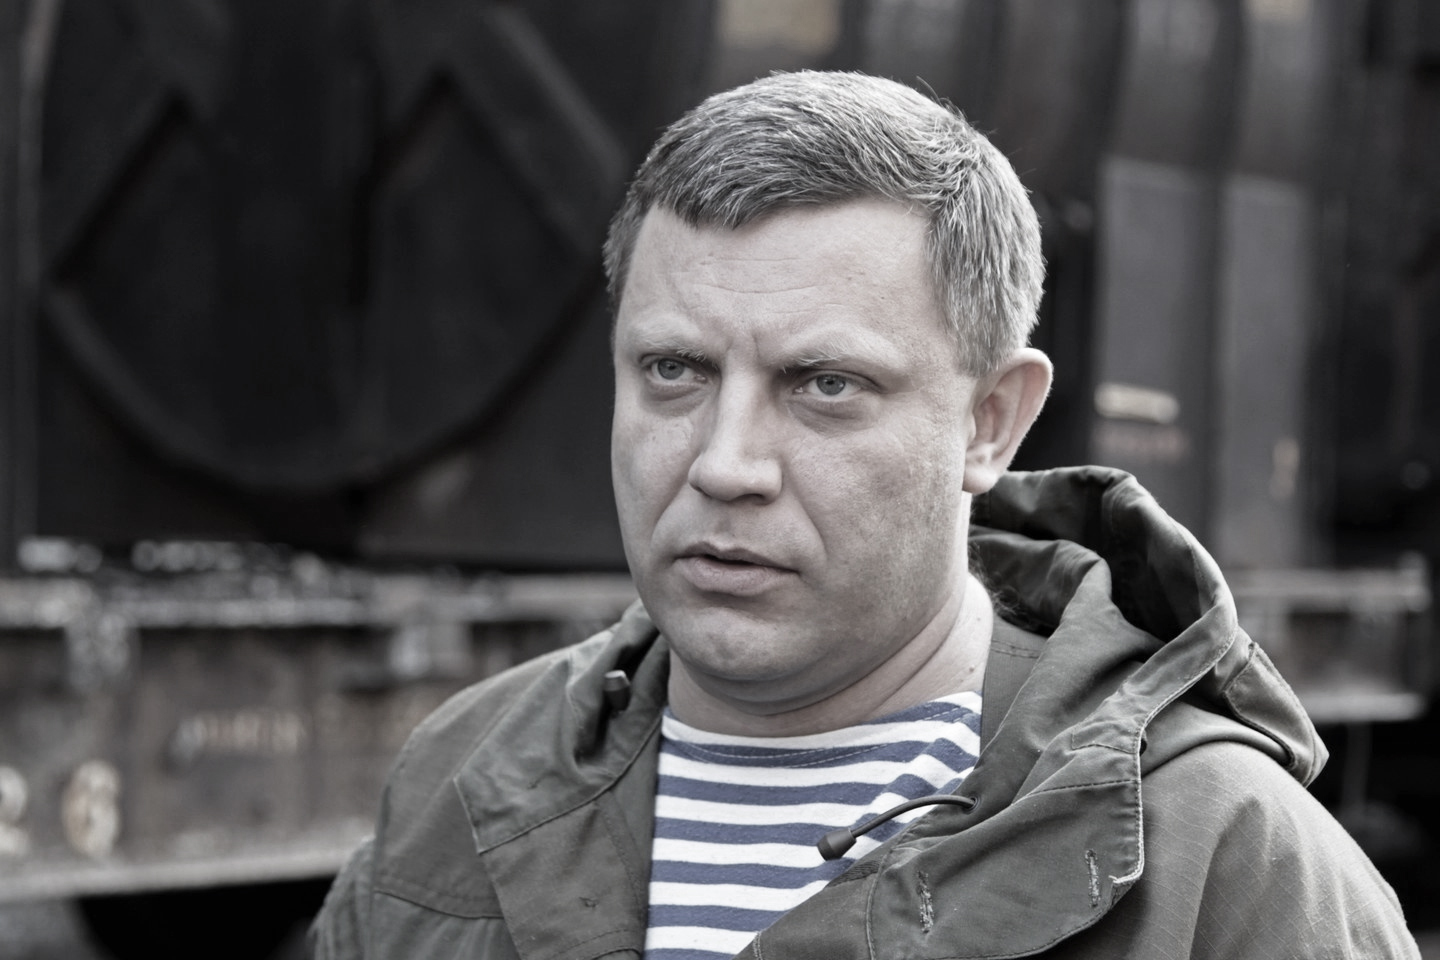 Why lie about Zakharchenko very much; there will be, first, after, you can, the author, understandably, the truth, the terrorist act, the magazine, on the contrary, when, caught, the testimony, everything, is, the minutes that are official, why